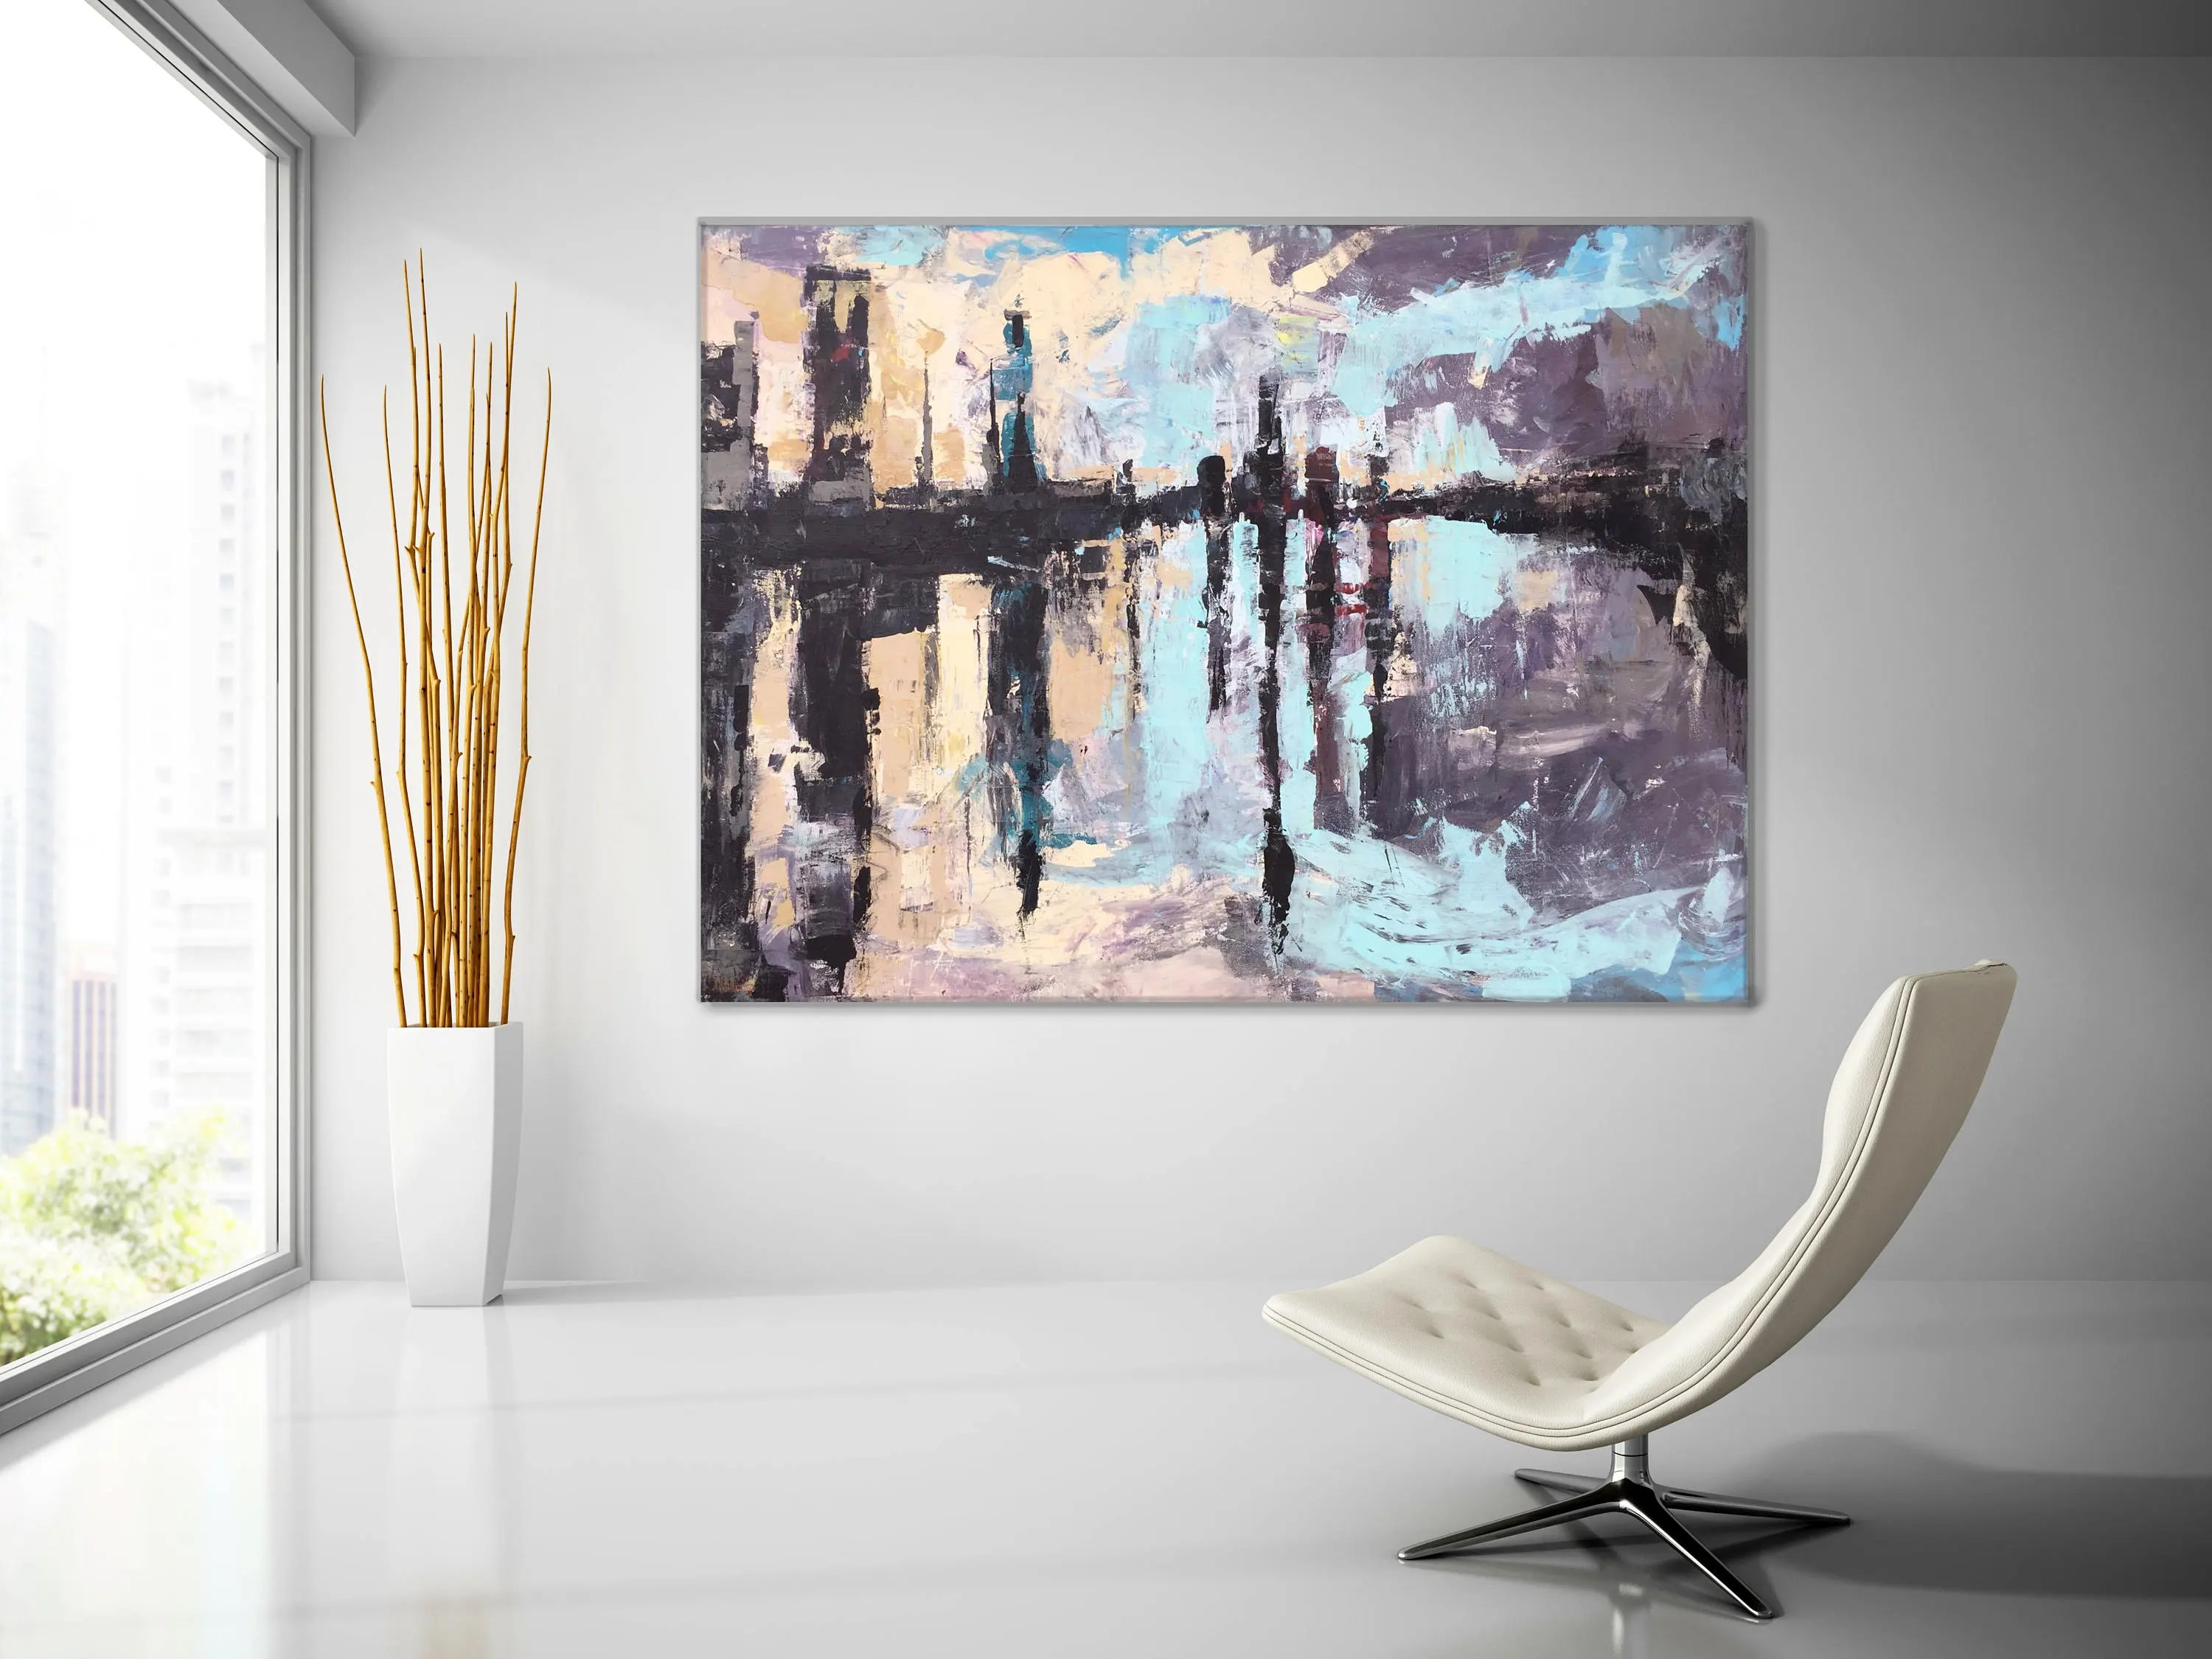 Sterling Huge Abstract Canvas Painting Large Canvas Art New York Paintingabstarct Lanscape Cityscape Wall Decor Decor Huge Abstract Canvas Painting Large Canvas Art New York art Abstract Canvas Art